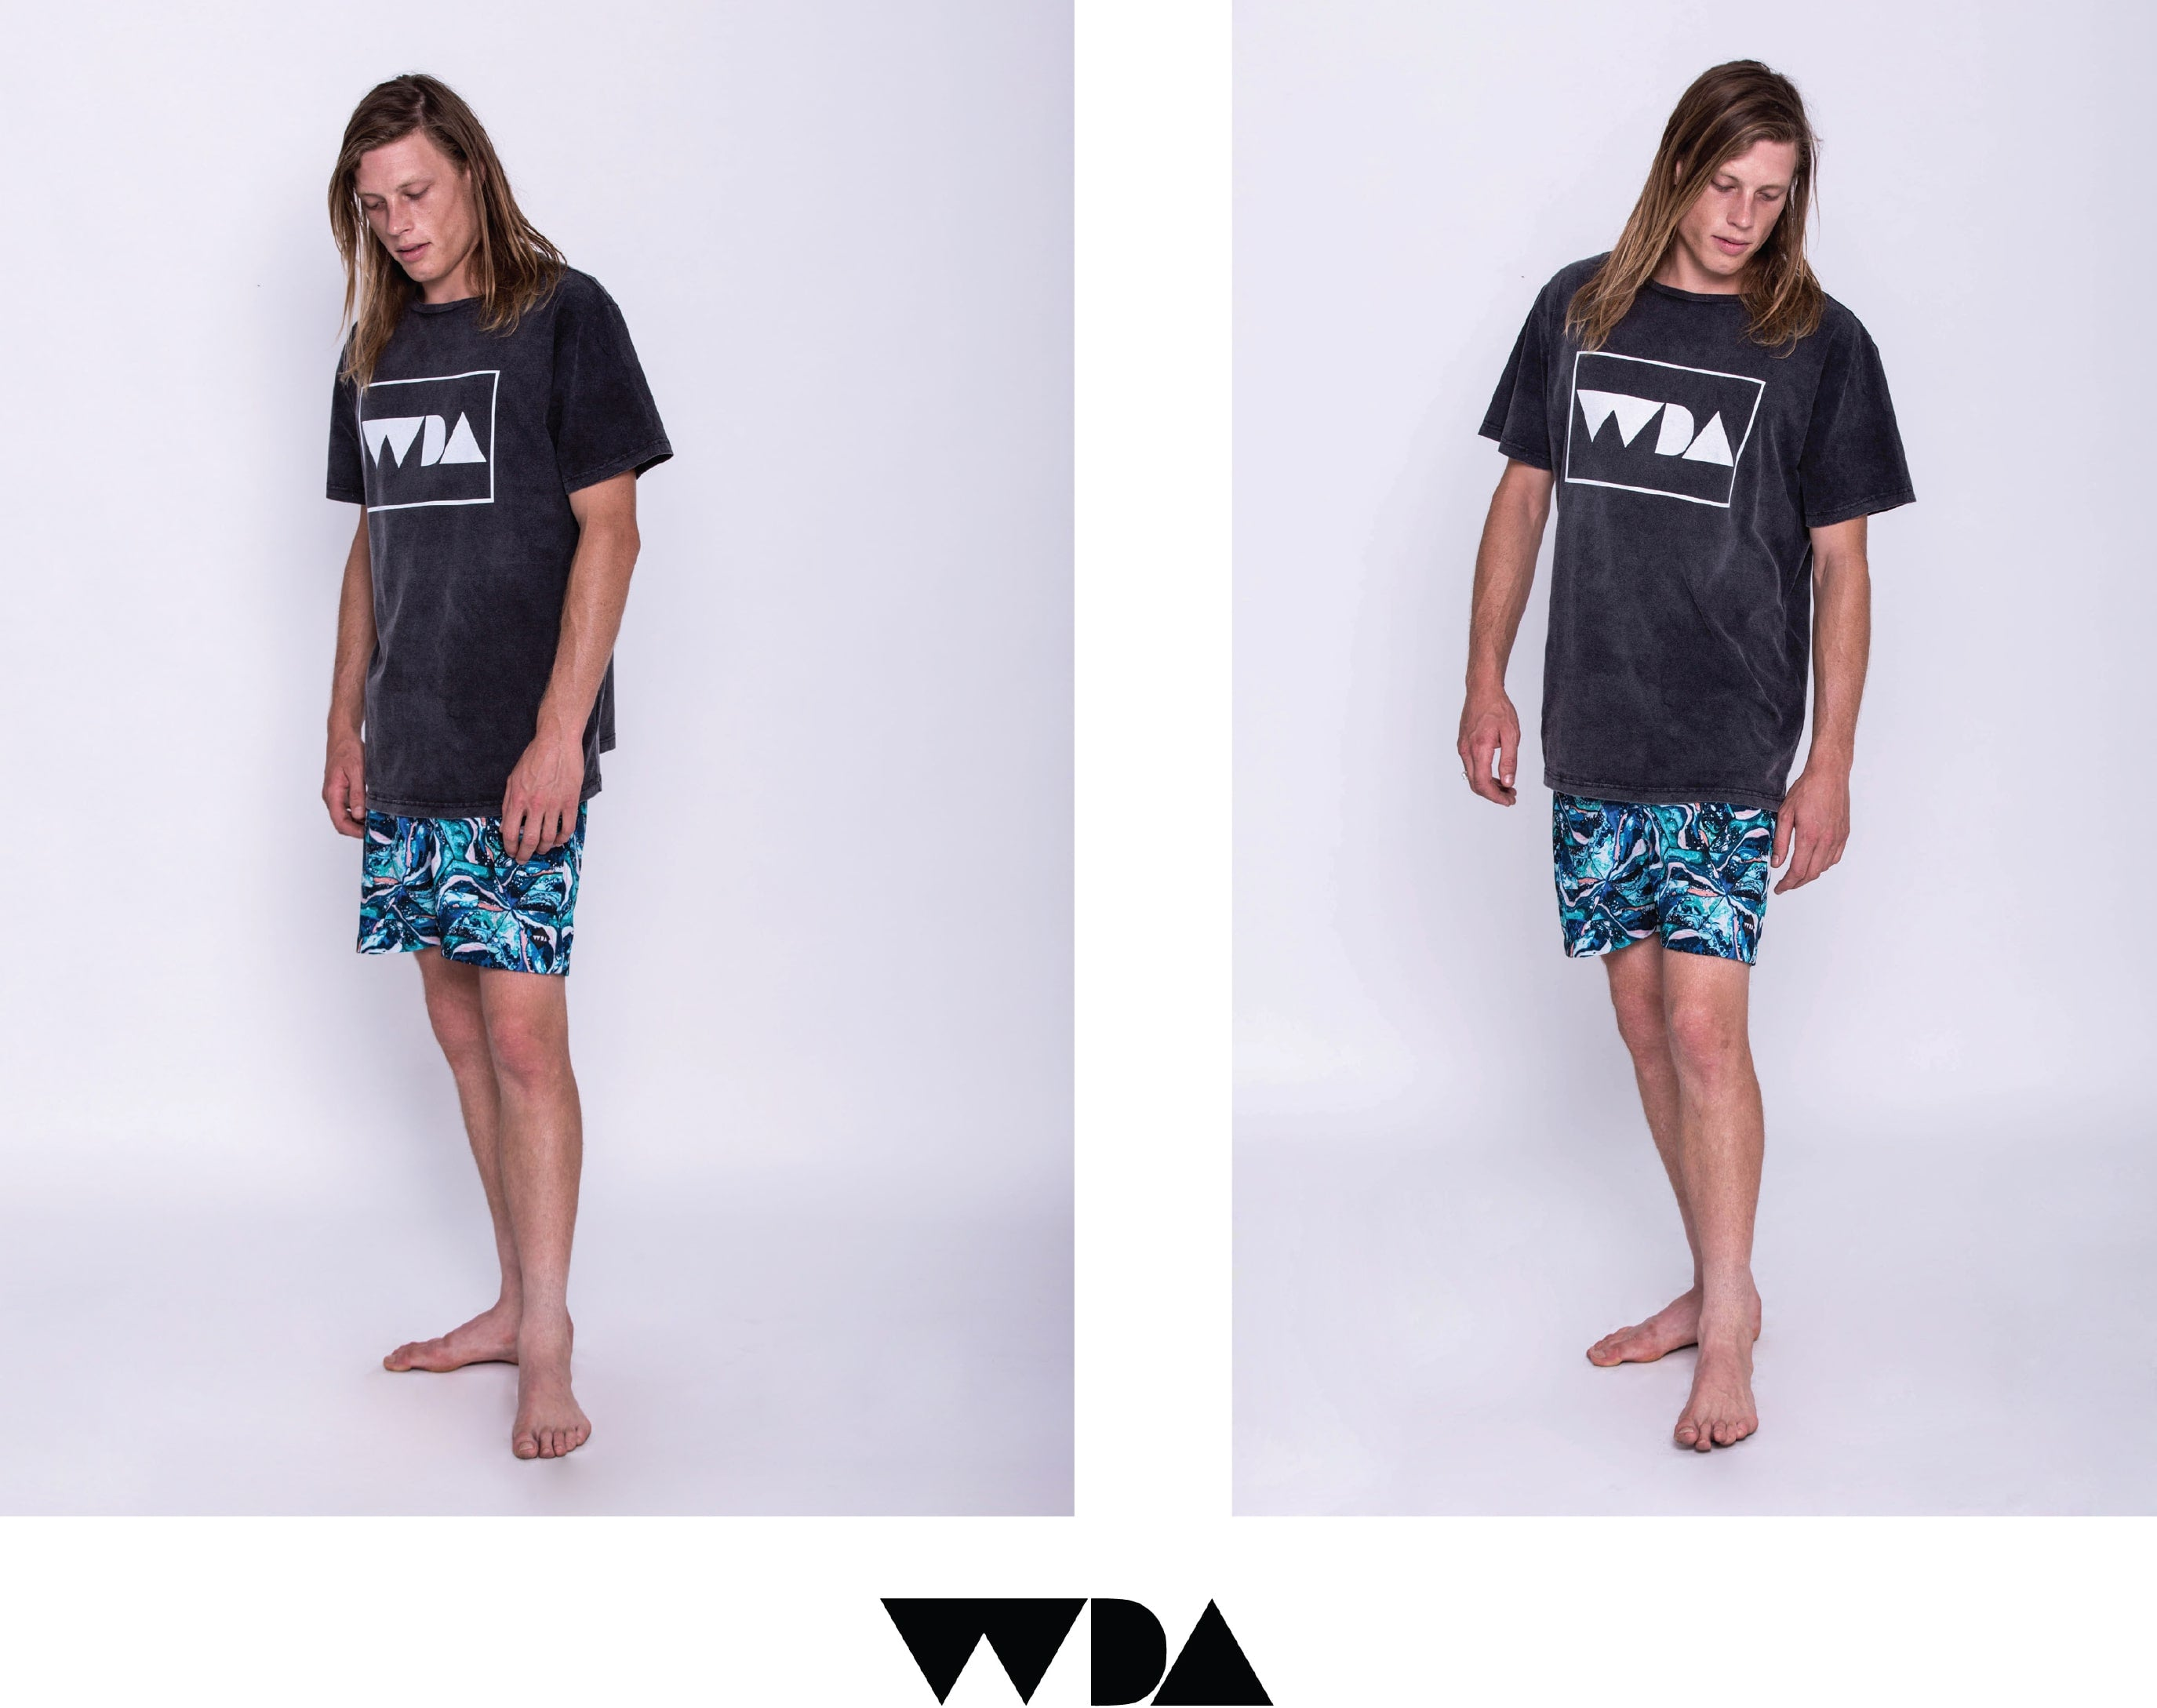 WDA, WE DREAM ALONE, CLOTHING, APPAREL, MENS, ACID WASH, TEE, BLACK, WHITE LOGO, SCREEN PRINT, LIFESTYLE, HENDRIX, BOARDSHORT, BLUE, TILE